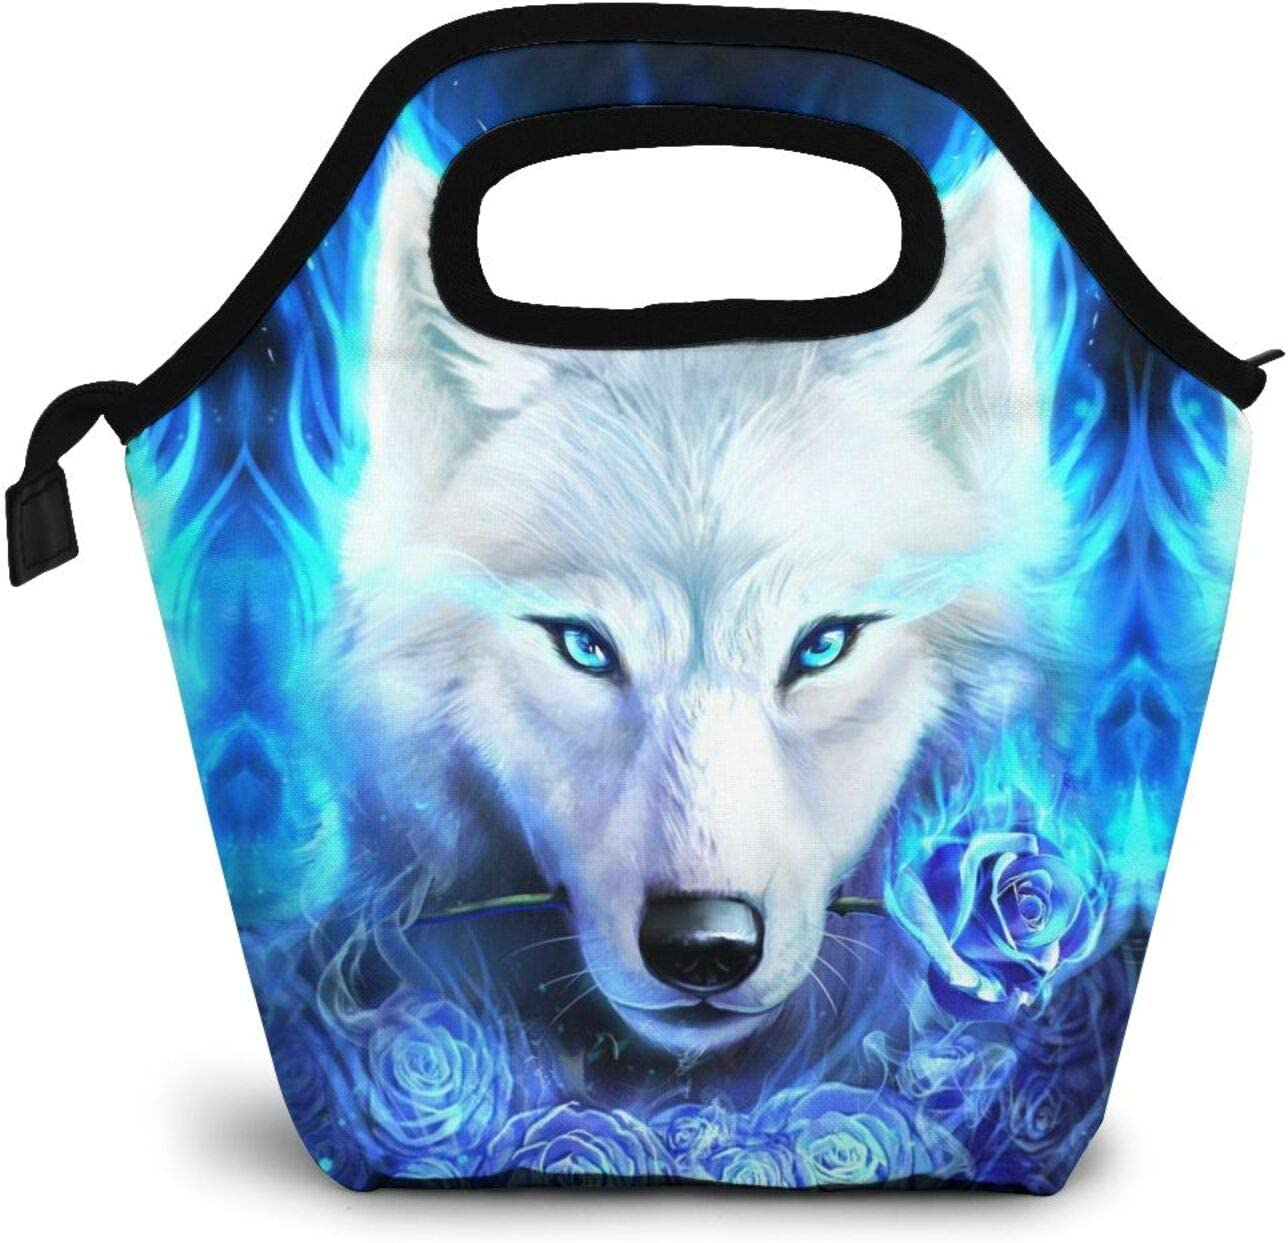 Wolf Lunch Bag Insulated Lunch Tote Blue Rose Reusable Cooler Bag Handbag Lunchbox Food Container Warm Food Pouch for Boys Girls School Office Work Travel Outdoor Picnic